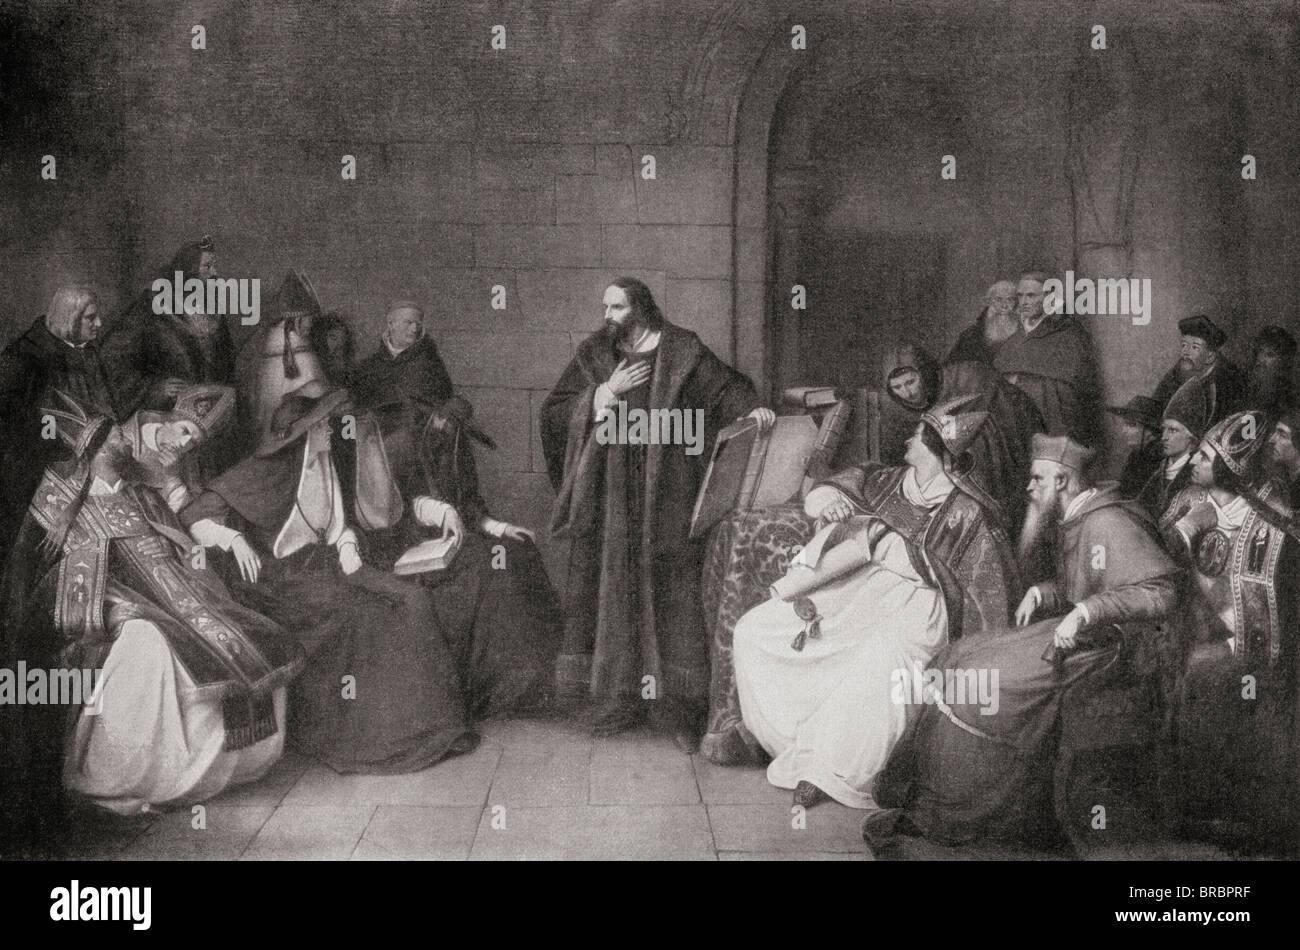 Jan Hus c.1369 - 1415. Czech priest, philosopher and reformer, before the Council of Constance in 1414. - Stock Image